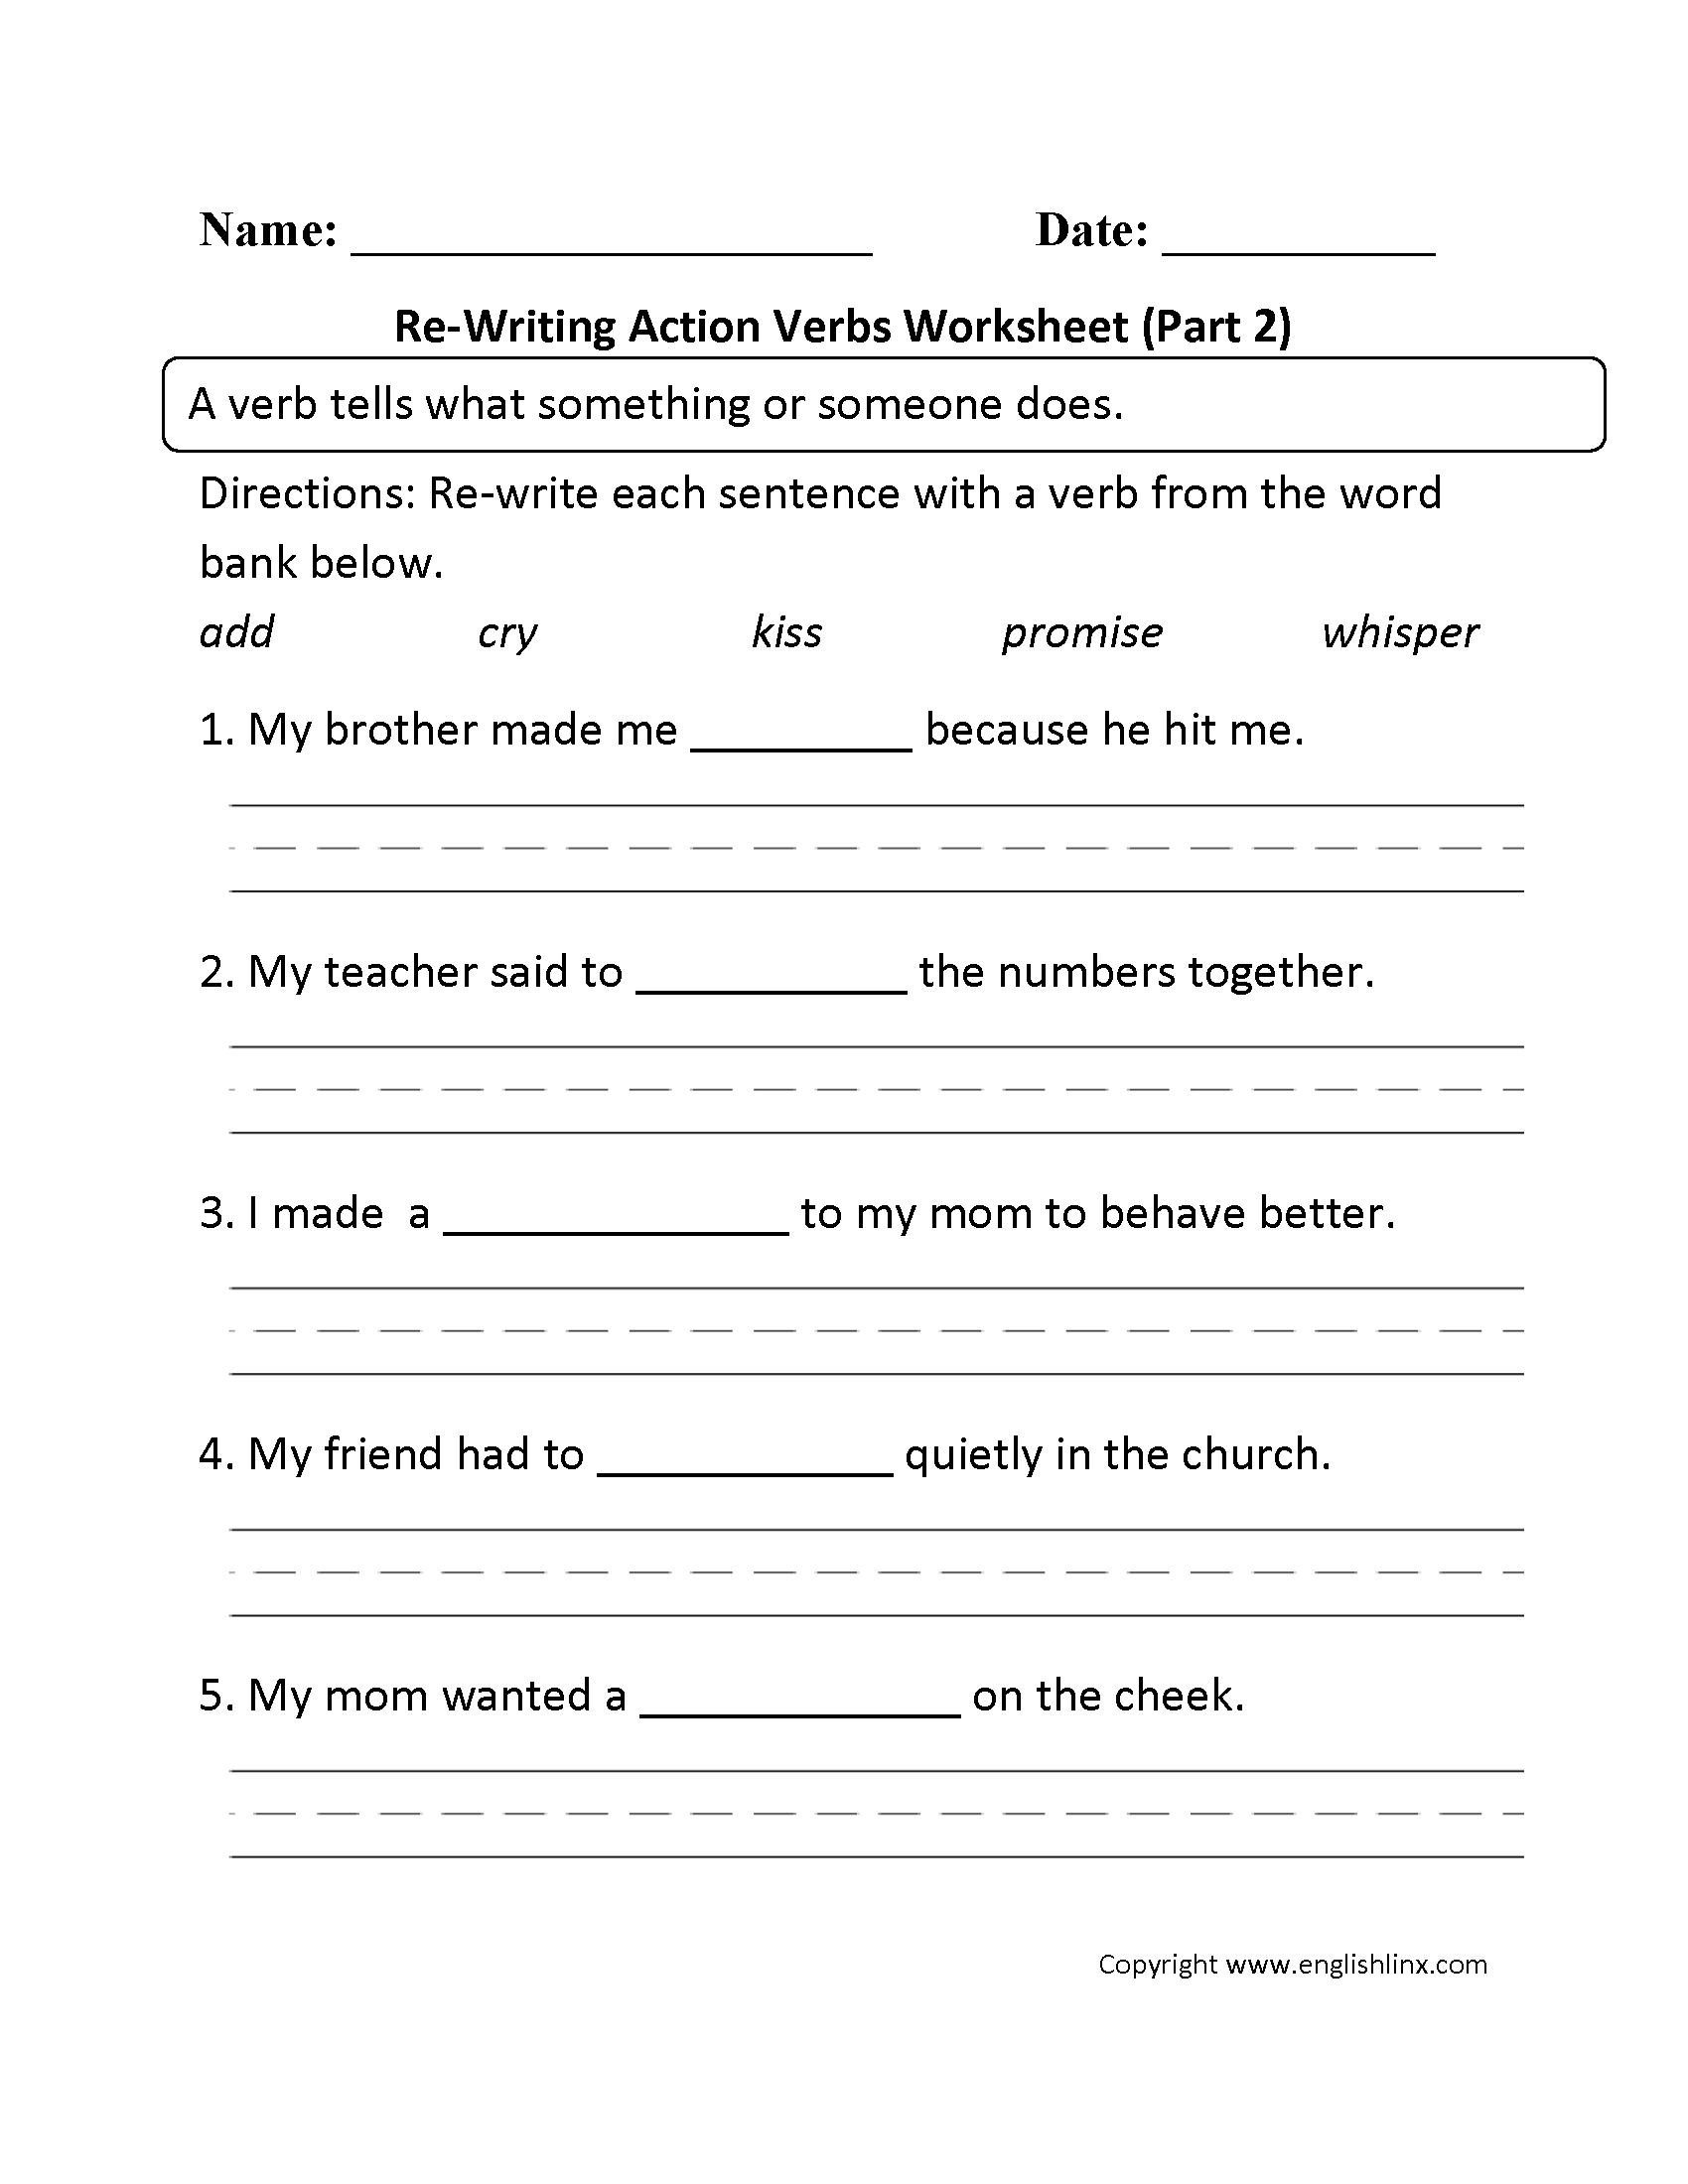 printables of 7th grade verb worksheets geotwitter kids activities. Black Bedroom Furniture Sets. Home Design Ideas